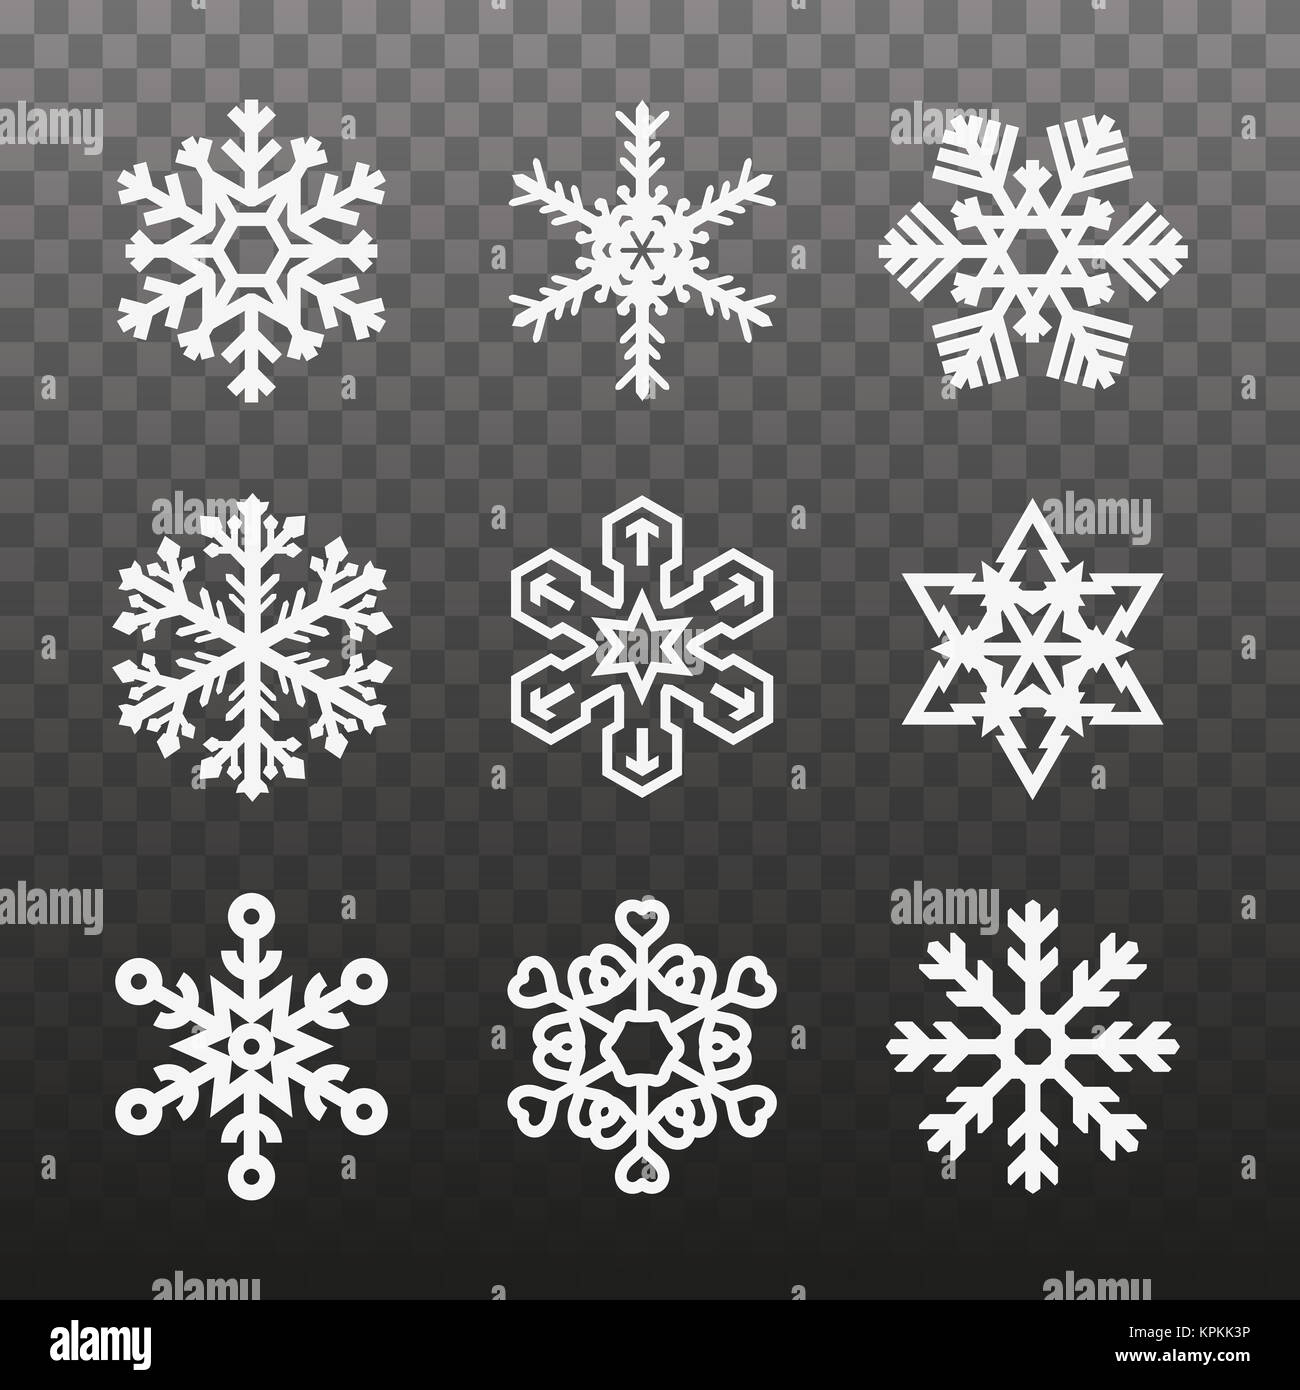 Asterisk symbol stock photos asterisk symbol stock images alamy several different types of snowflakes snowflakes of different shapes on a plaid transparent background biocorpaavc Image collections